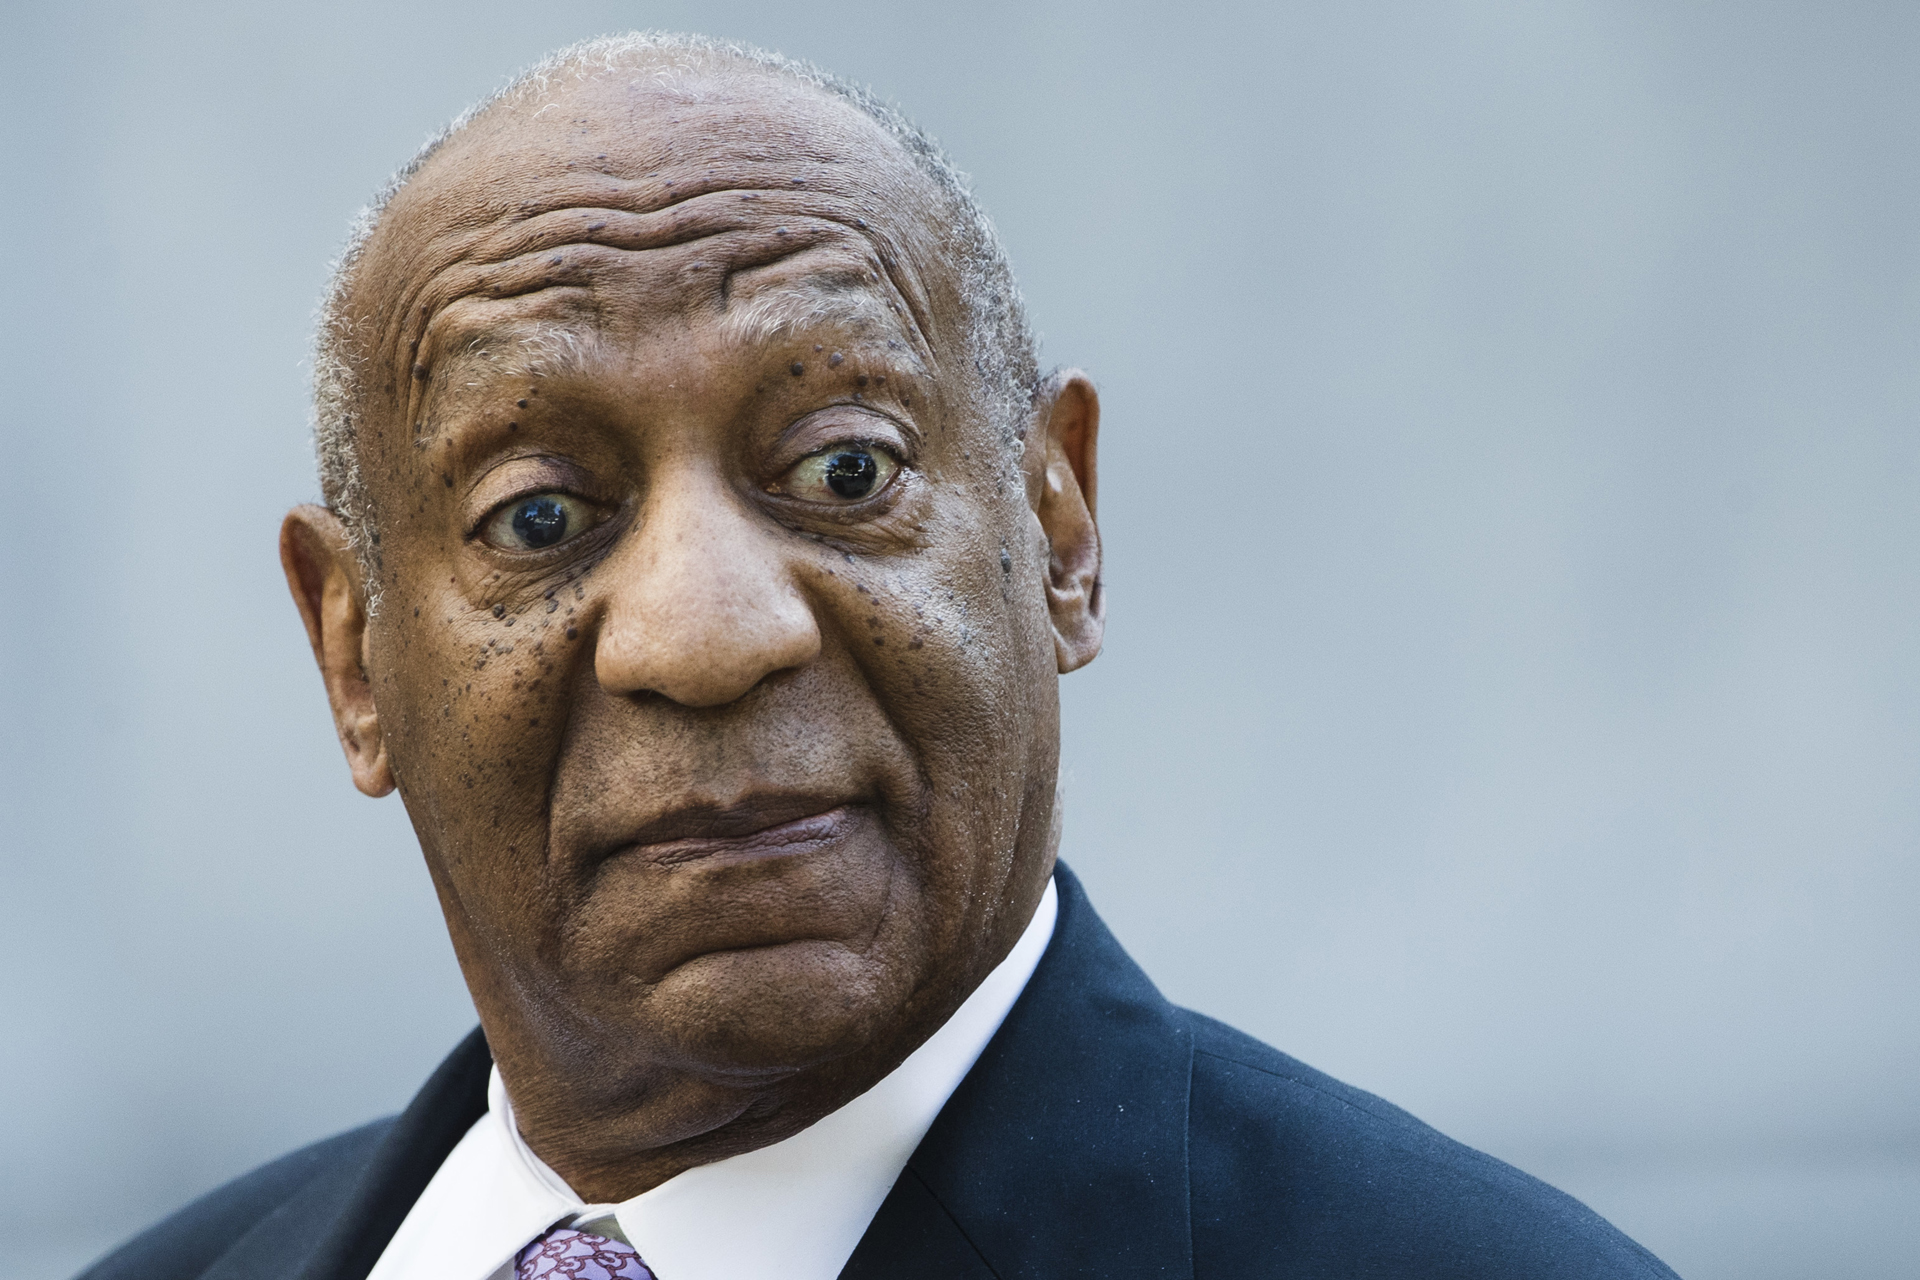 Bill Cosby is working on a TV show following prison release